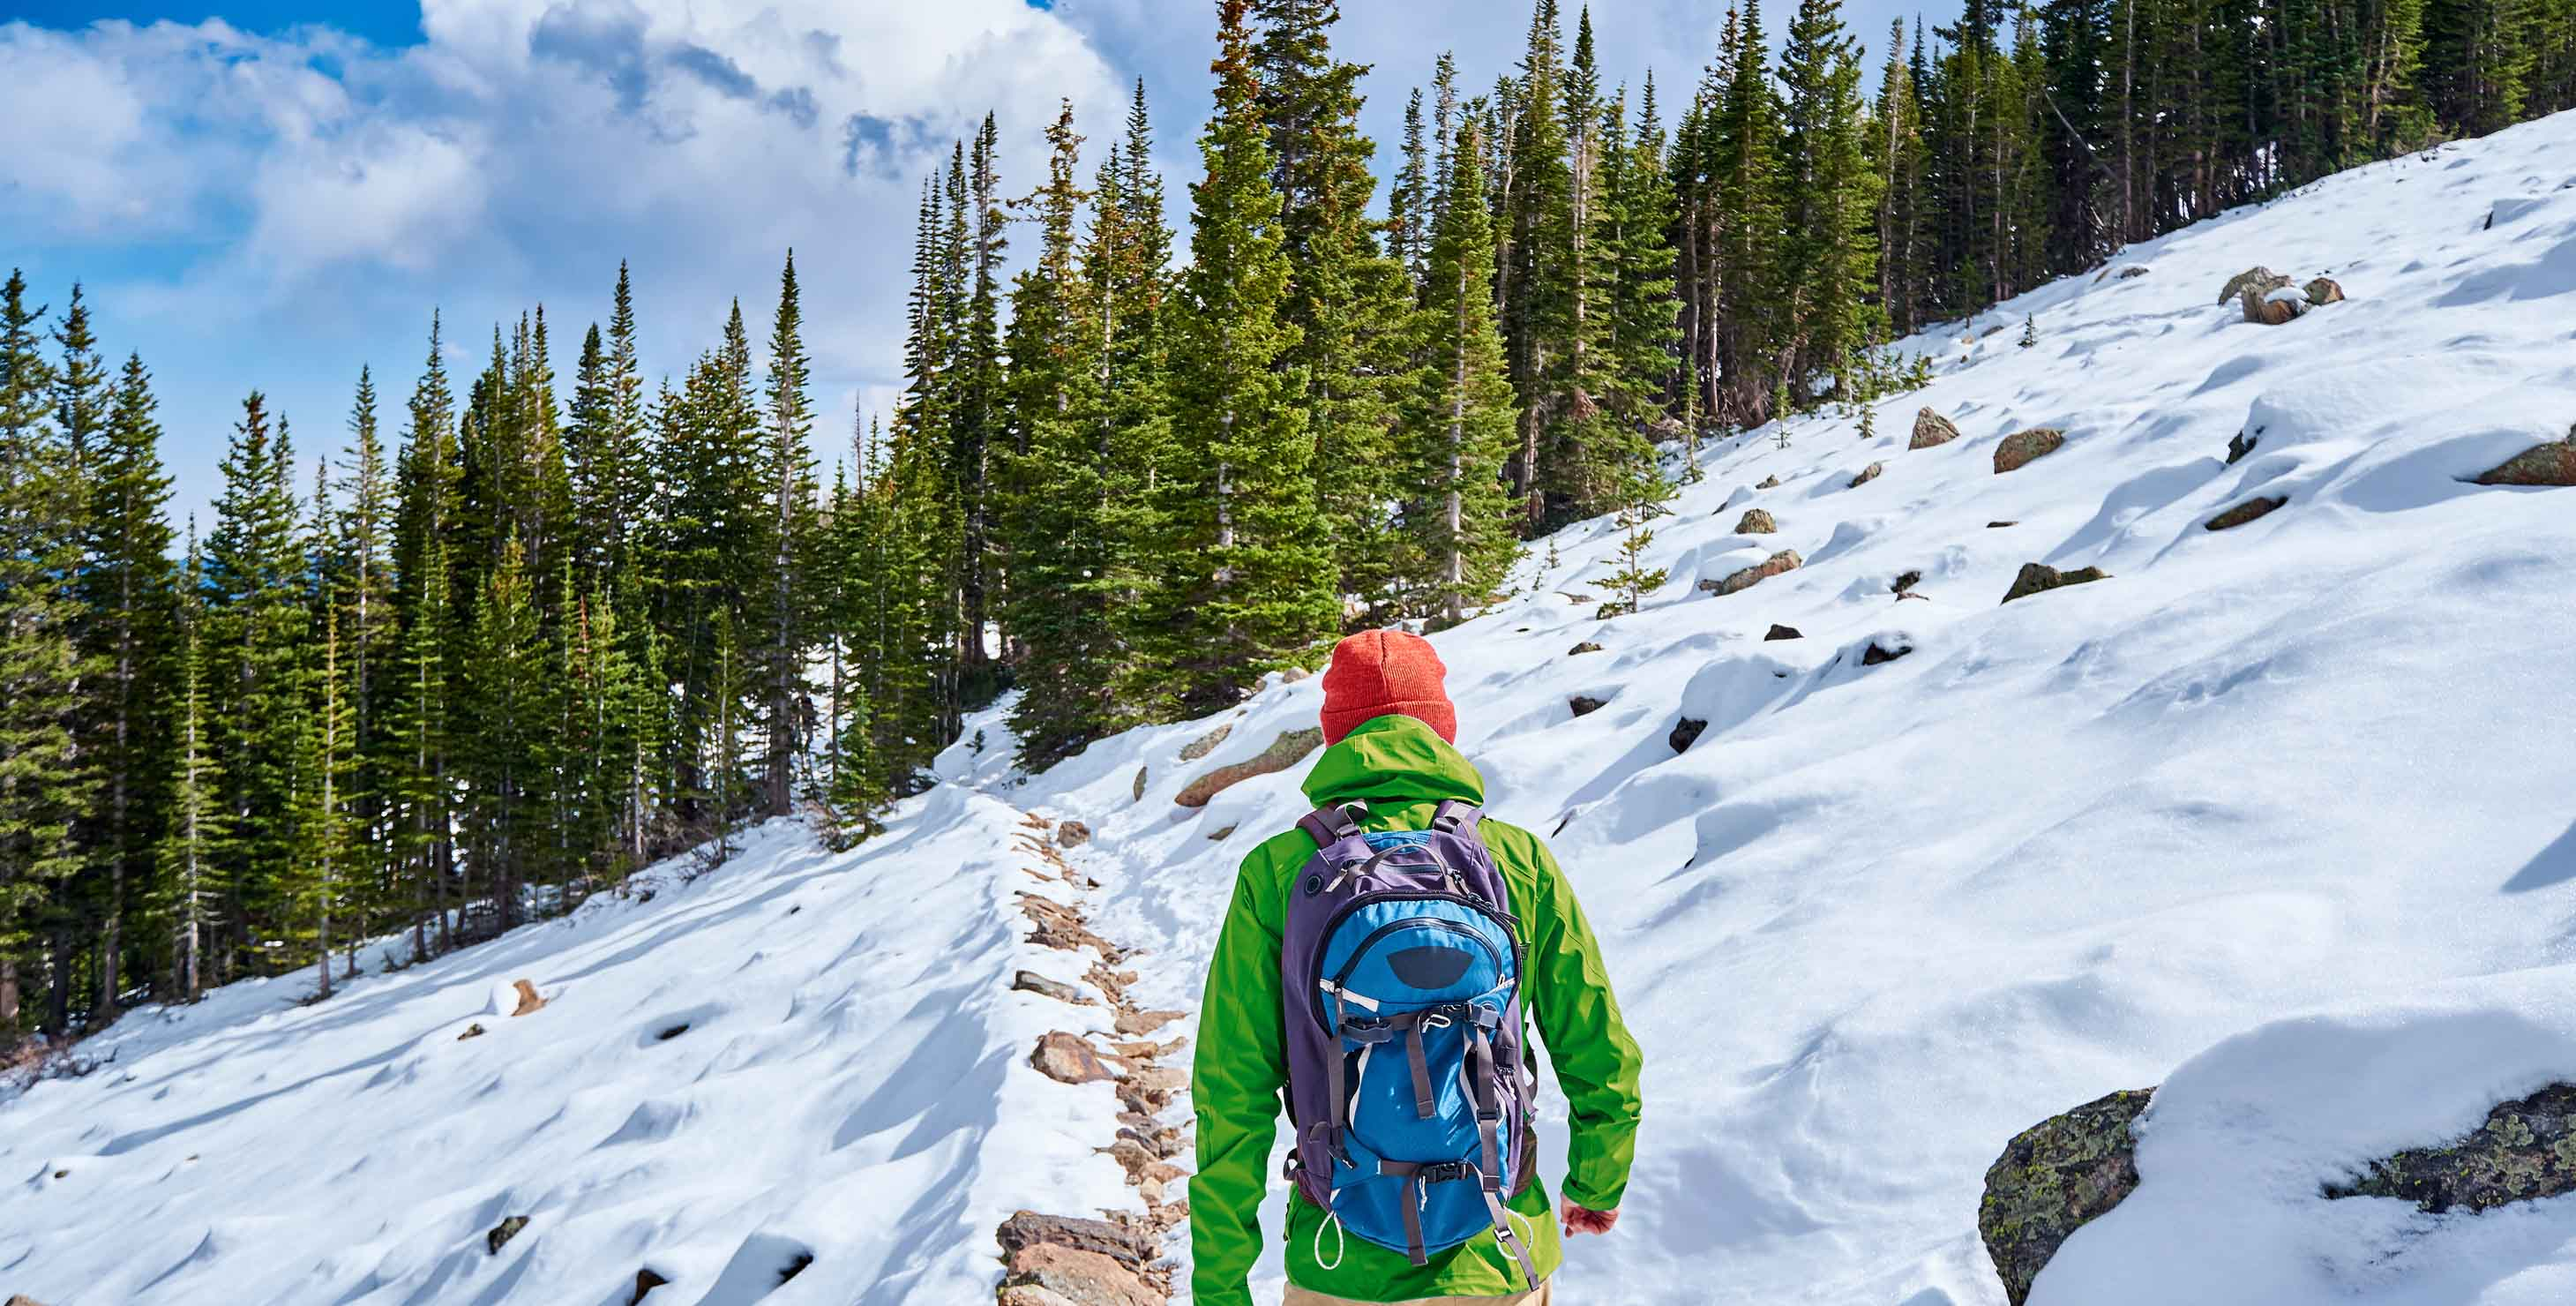 Man hiking on a trail in snow